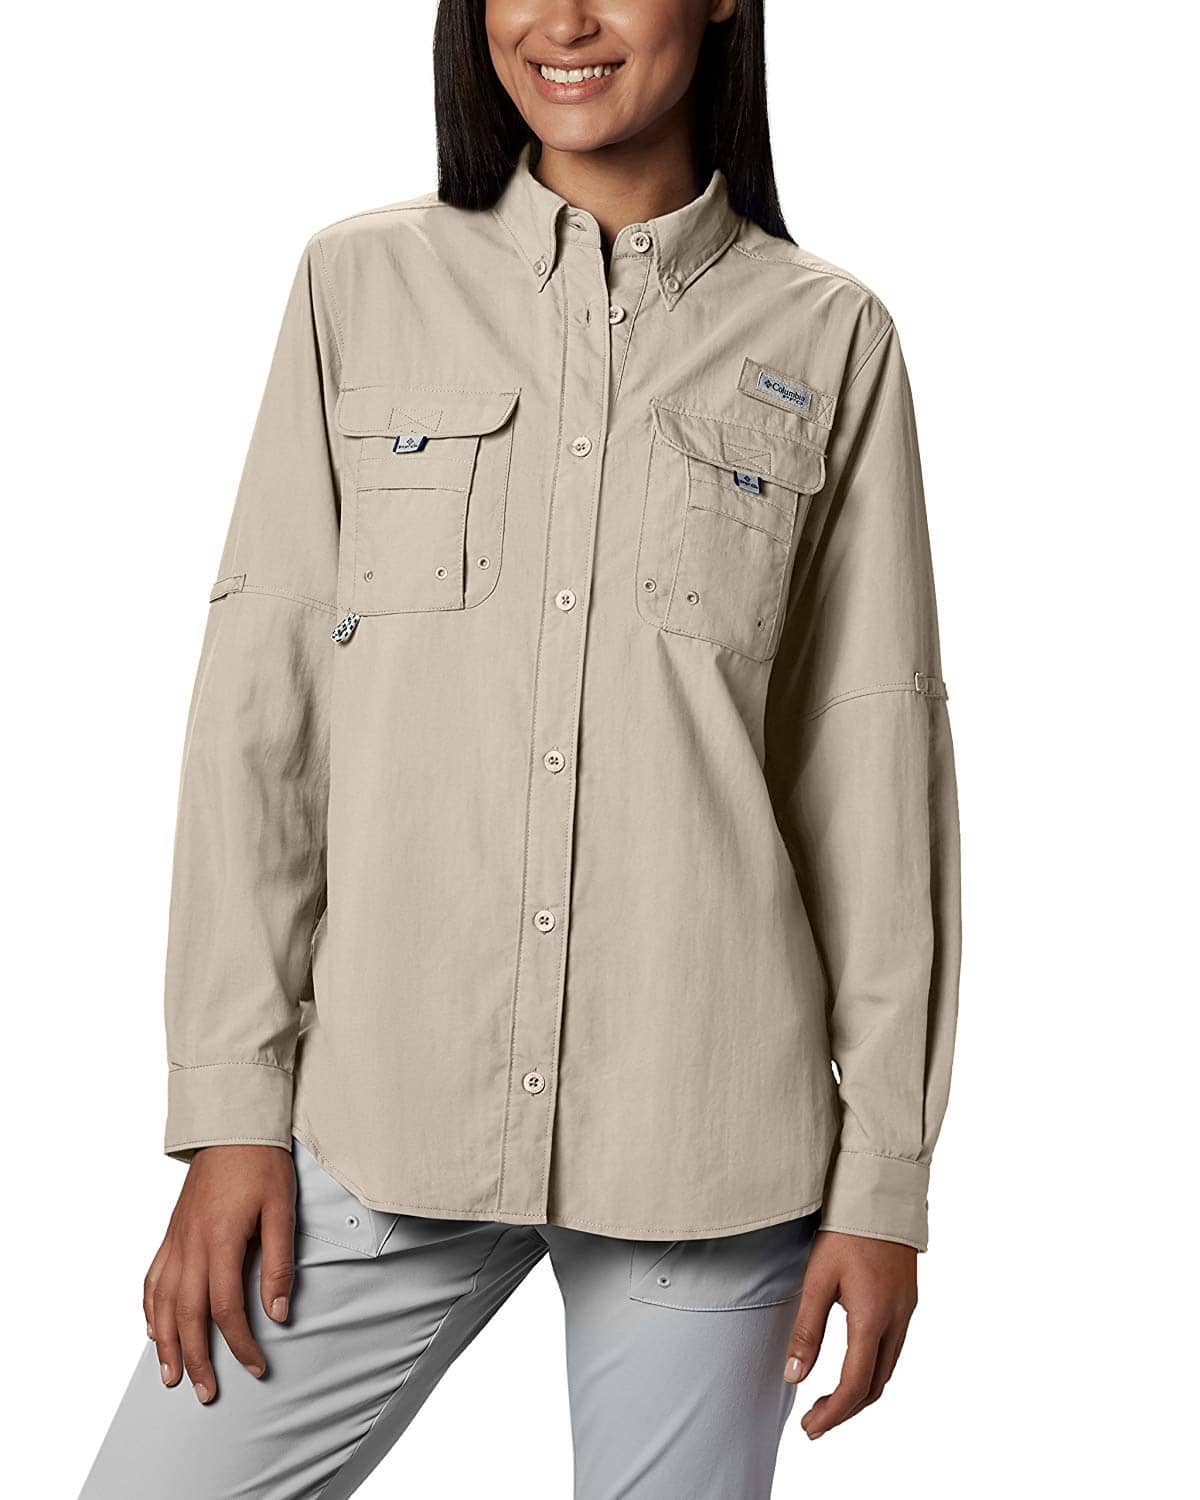 11c1e825729 Columbia Women's PFG Bahama Ii Long Sleeve Shirt, Breathable with Uv  Protection(size:small) $18.22 - Slickdeals.net